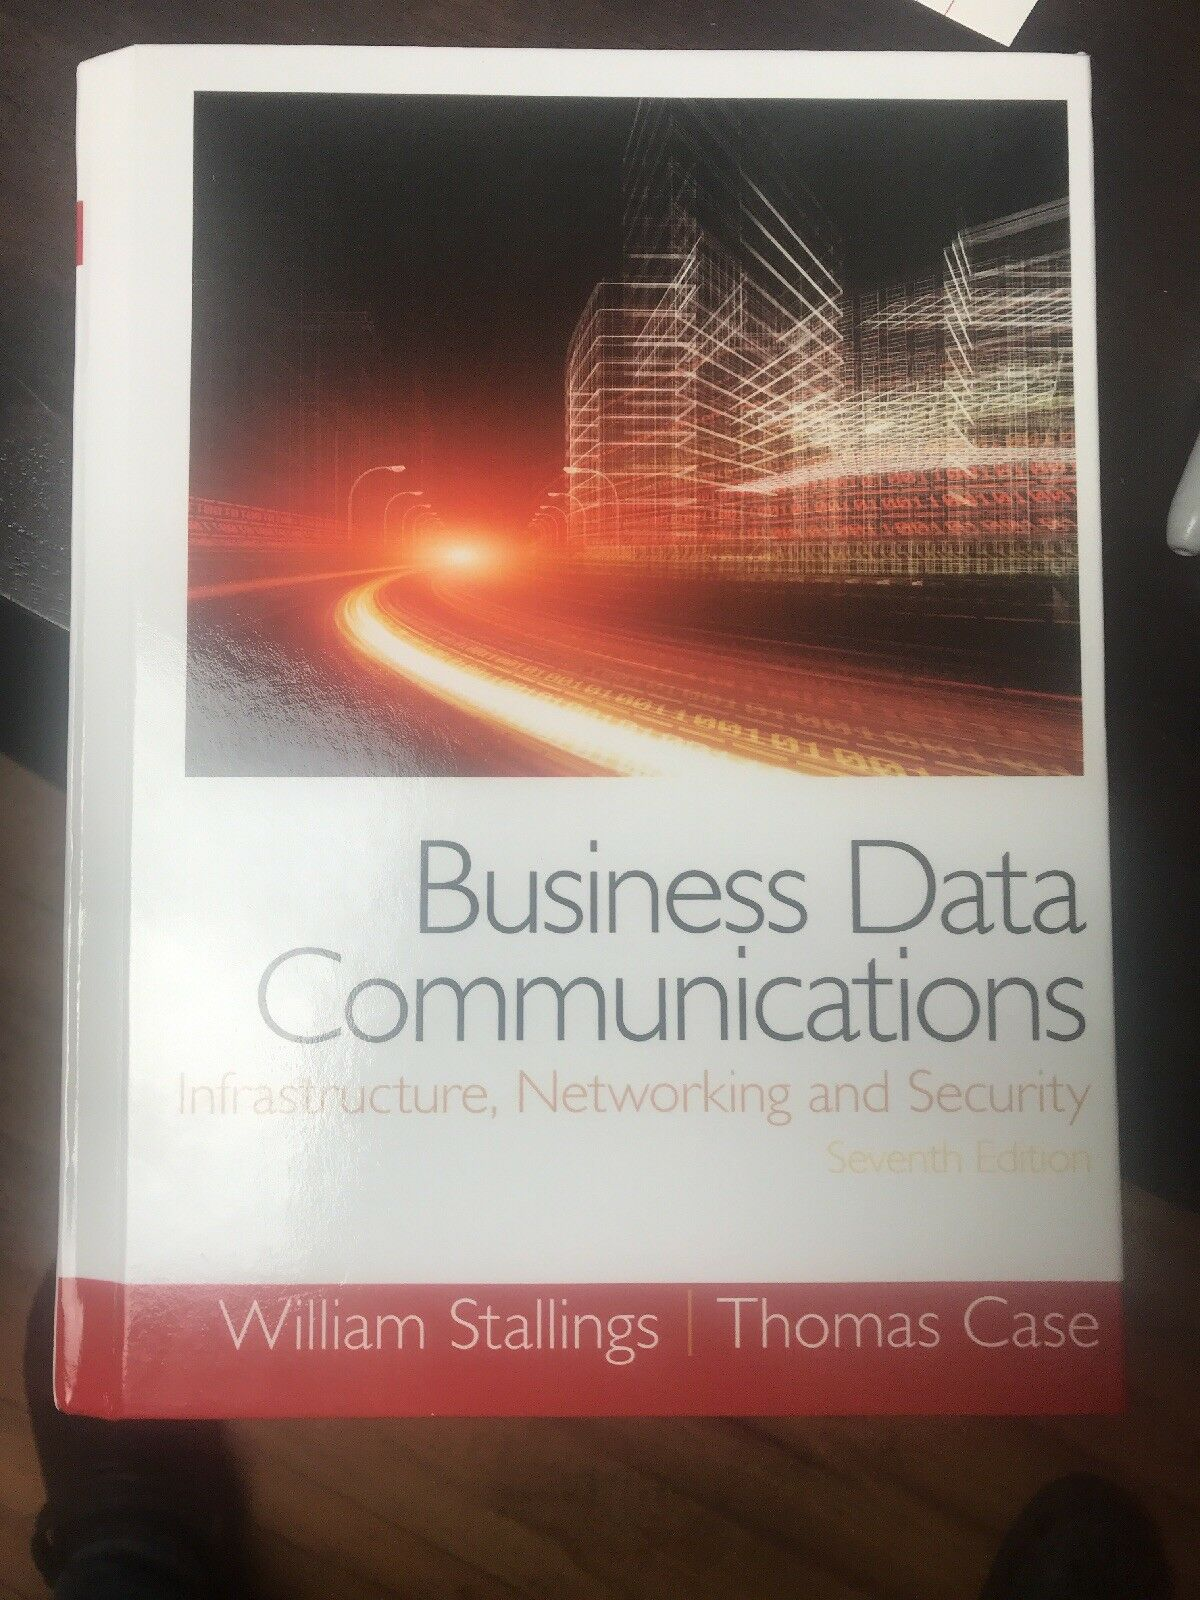 Security 3rd network william edition download free essentials stallings by ebook